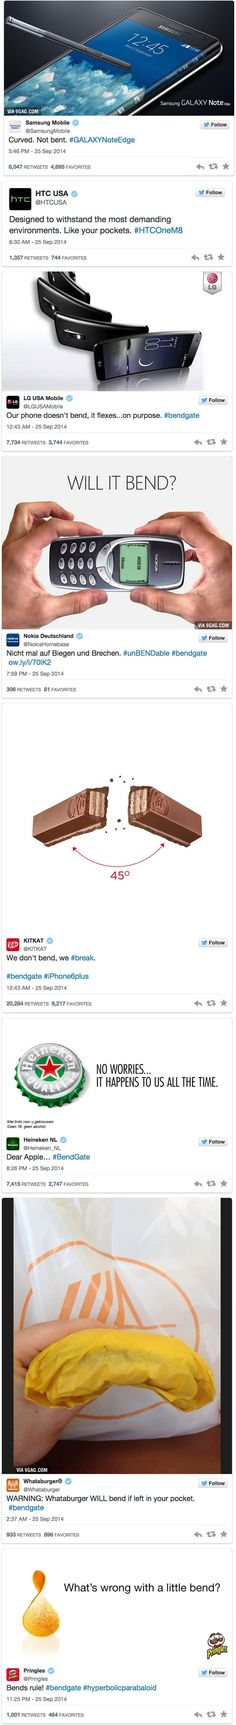 How major brands are reacting to Apple's iPhone 6 bend - Imgur